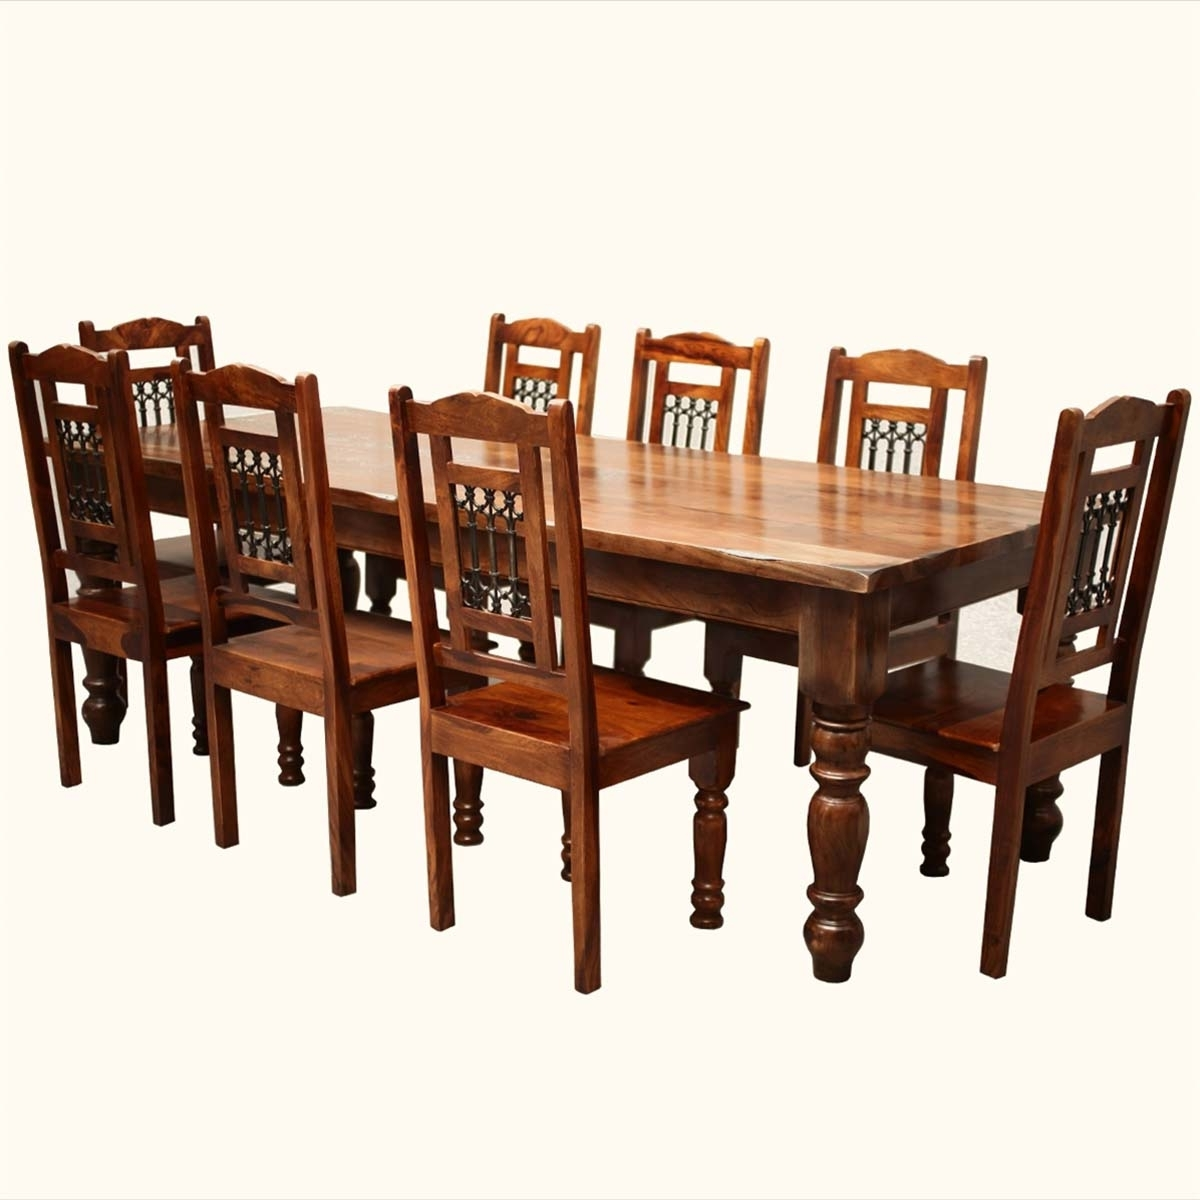 Dining Tables And 8 Chairs Sets Regarding Famous 8 Chair Dining Table Sets Gallery Dining, Dining Table Set 8 Chairs (View 12 of 25)